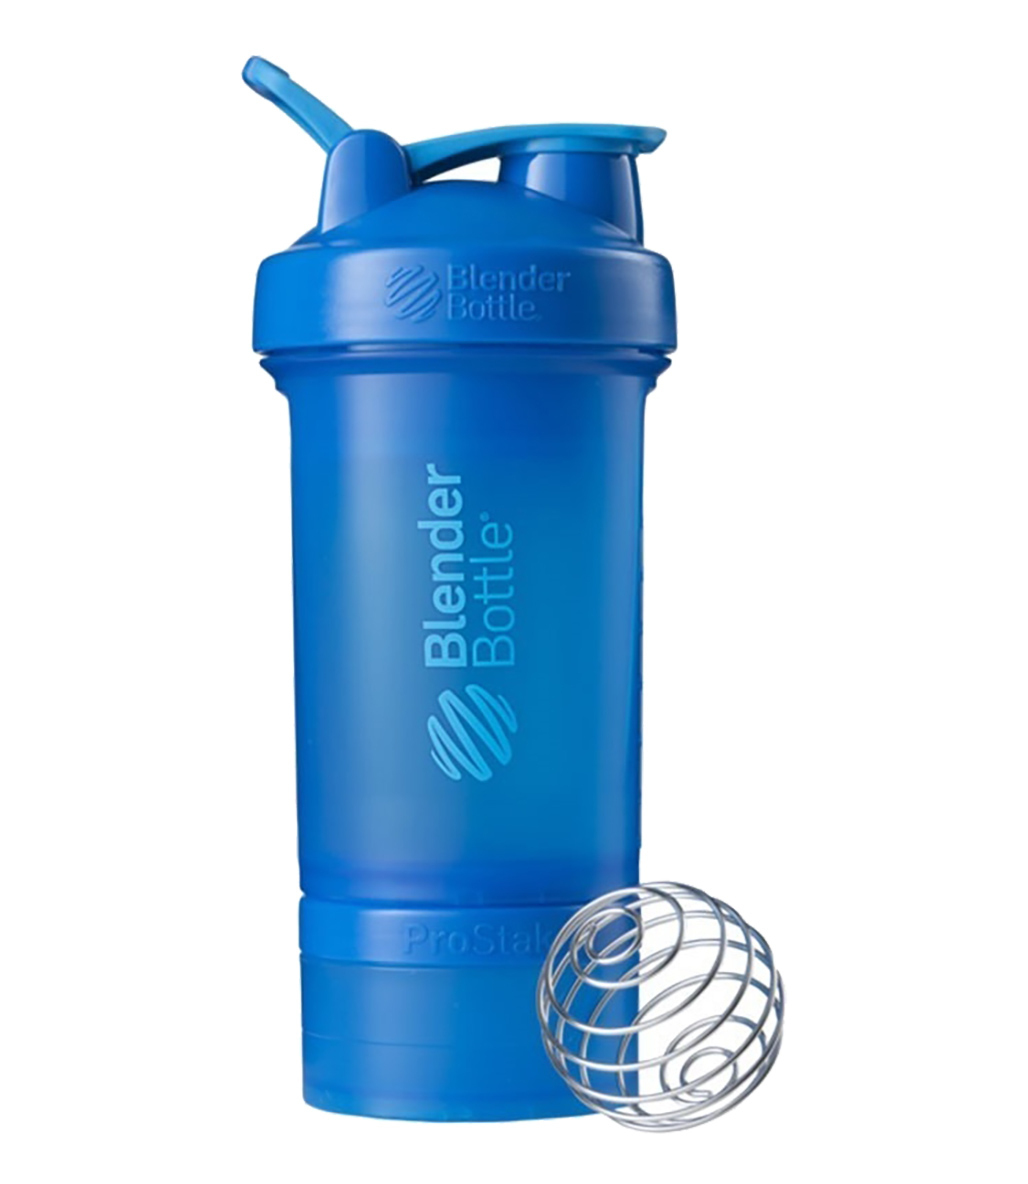 Blender Bottle Prostak Mavi 450 ml